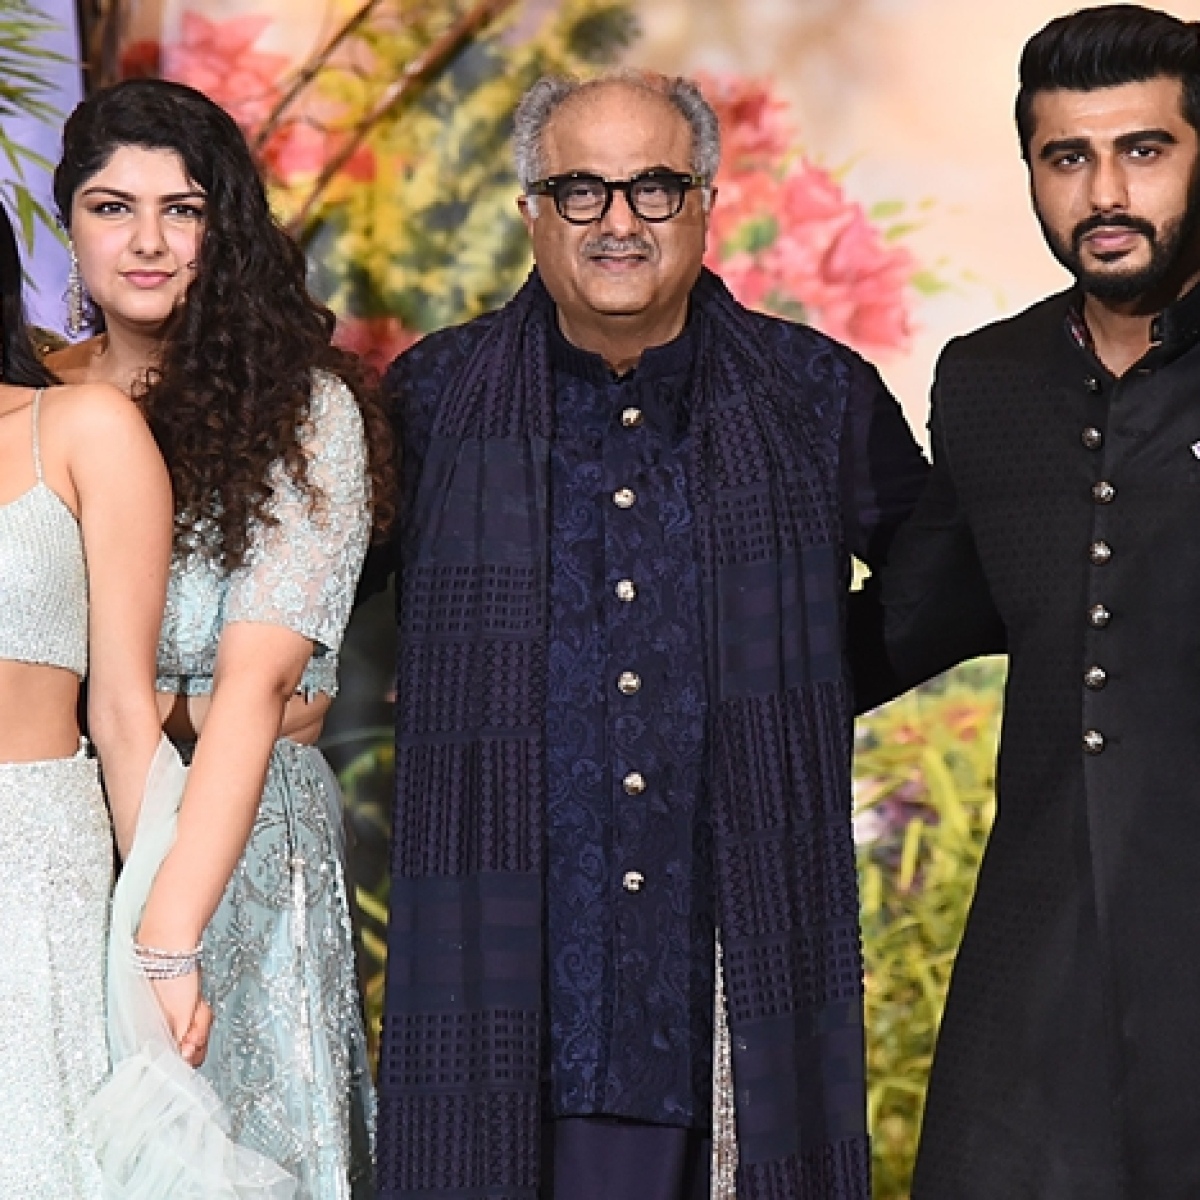 'Can't say I'm okay': Arjun Kapoor on 'repercussions' of dad Boney Kapoor's affair with Sridevi